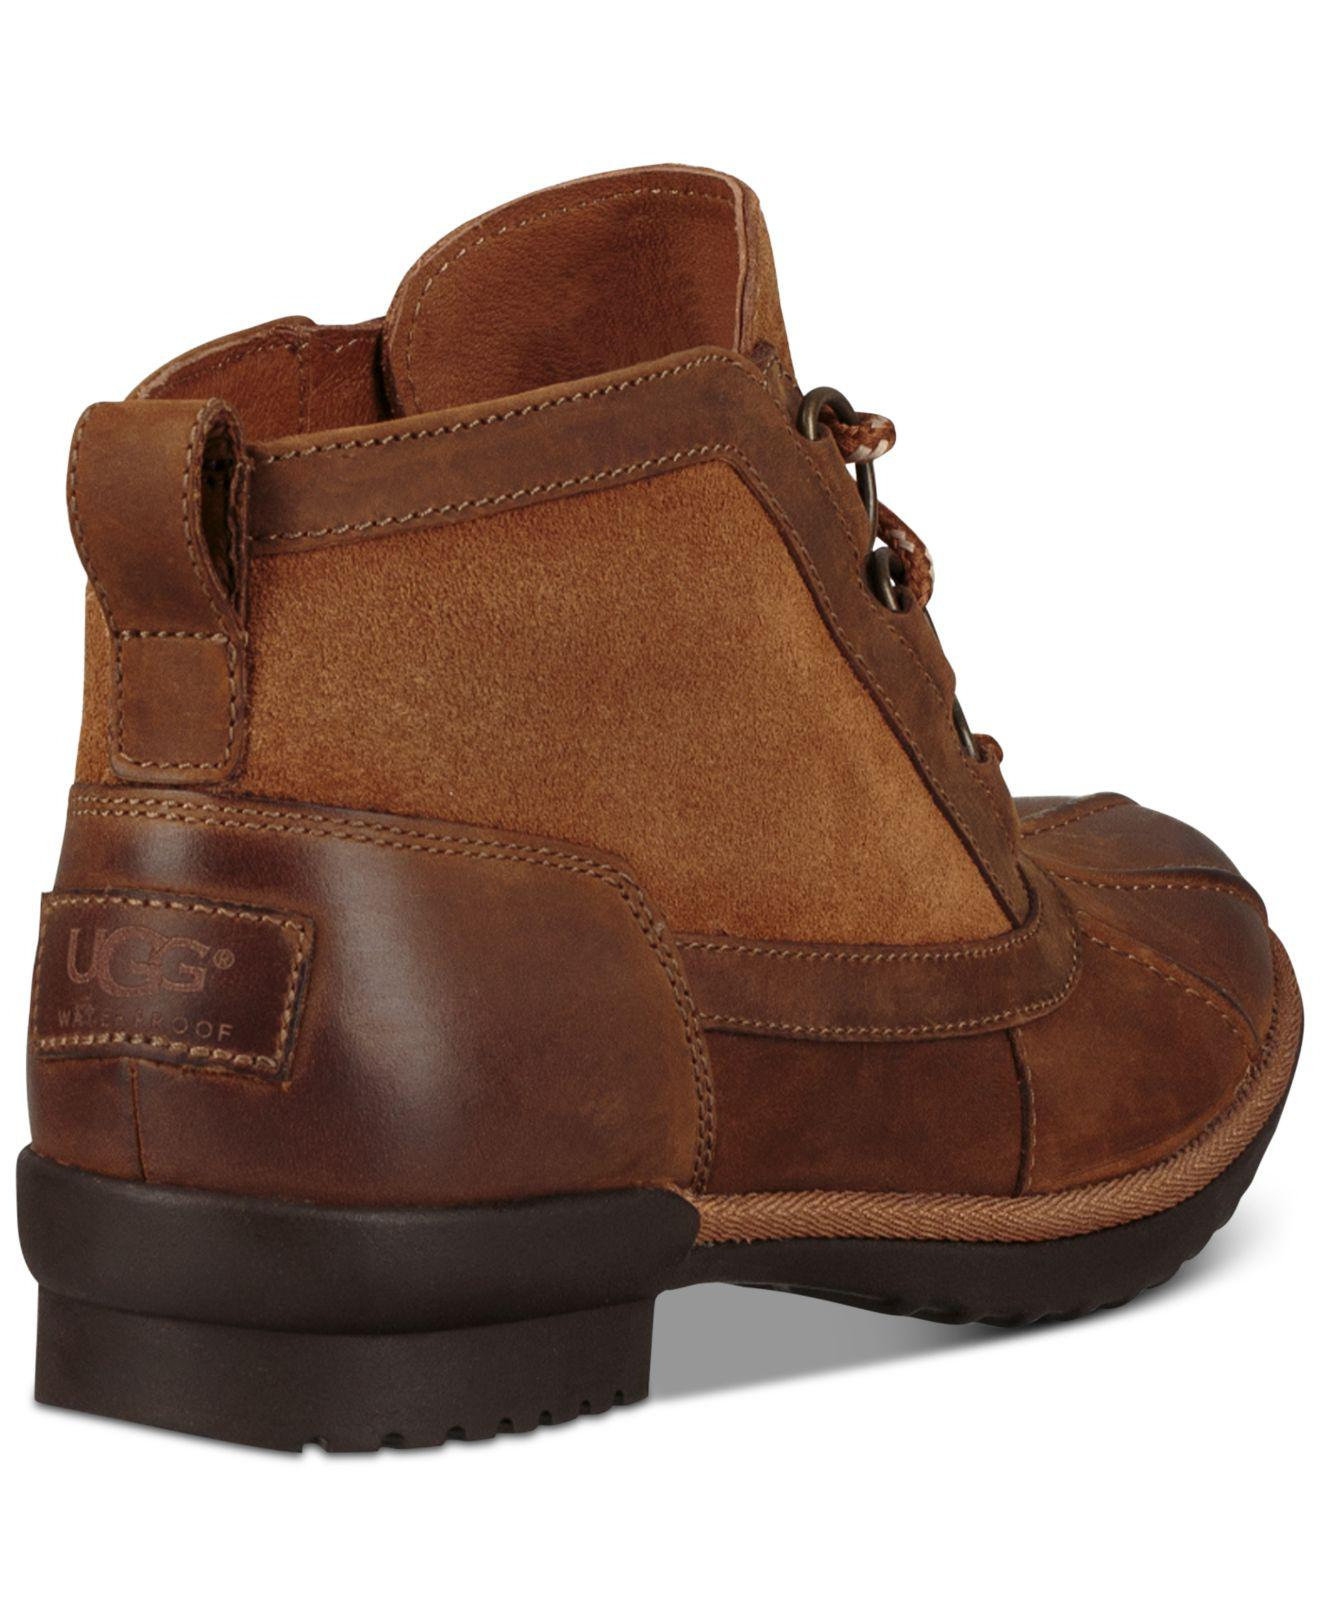 61ffca01074 Women's Brown Heather Cold-weather Boots